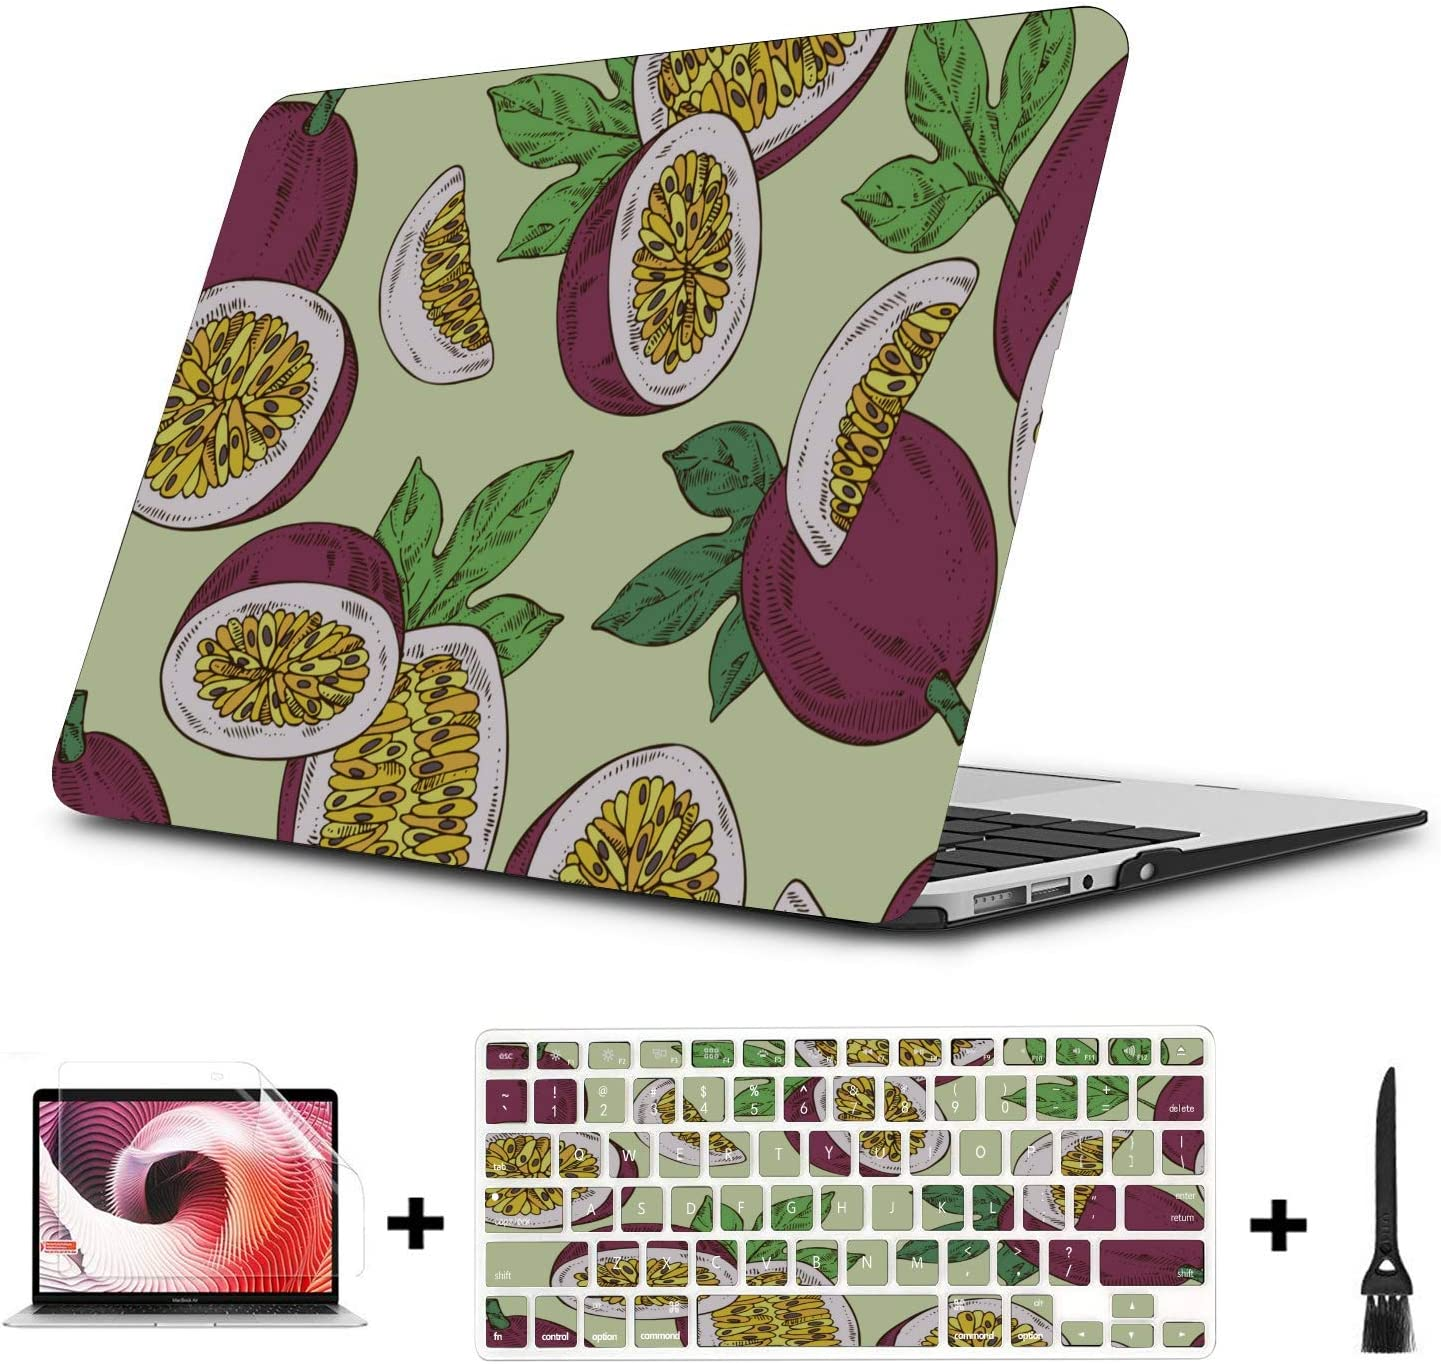 MacBook Protector Summer Sweet Sour Passion Fruit Drink Plastic Hard Shell Compatible Mac Air 11 Pro 13 15 MacBook Protector Protection for MacBook 2016-2019 Version